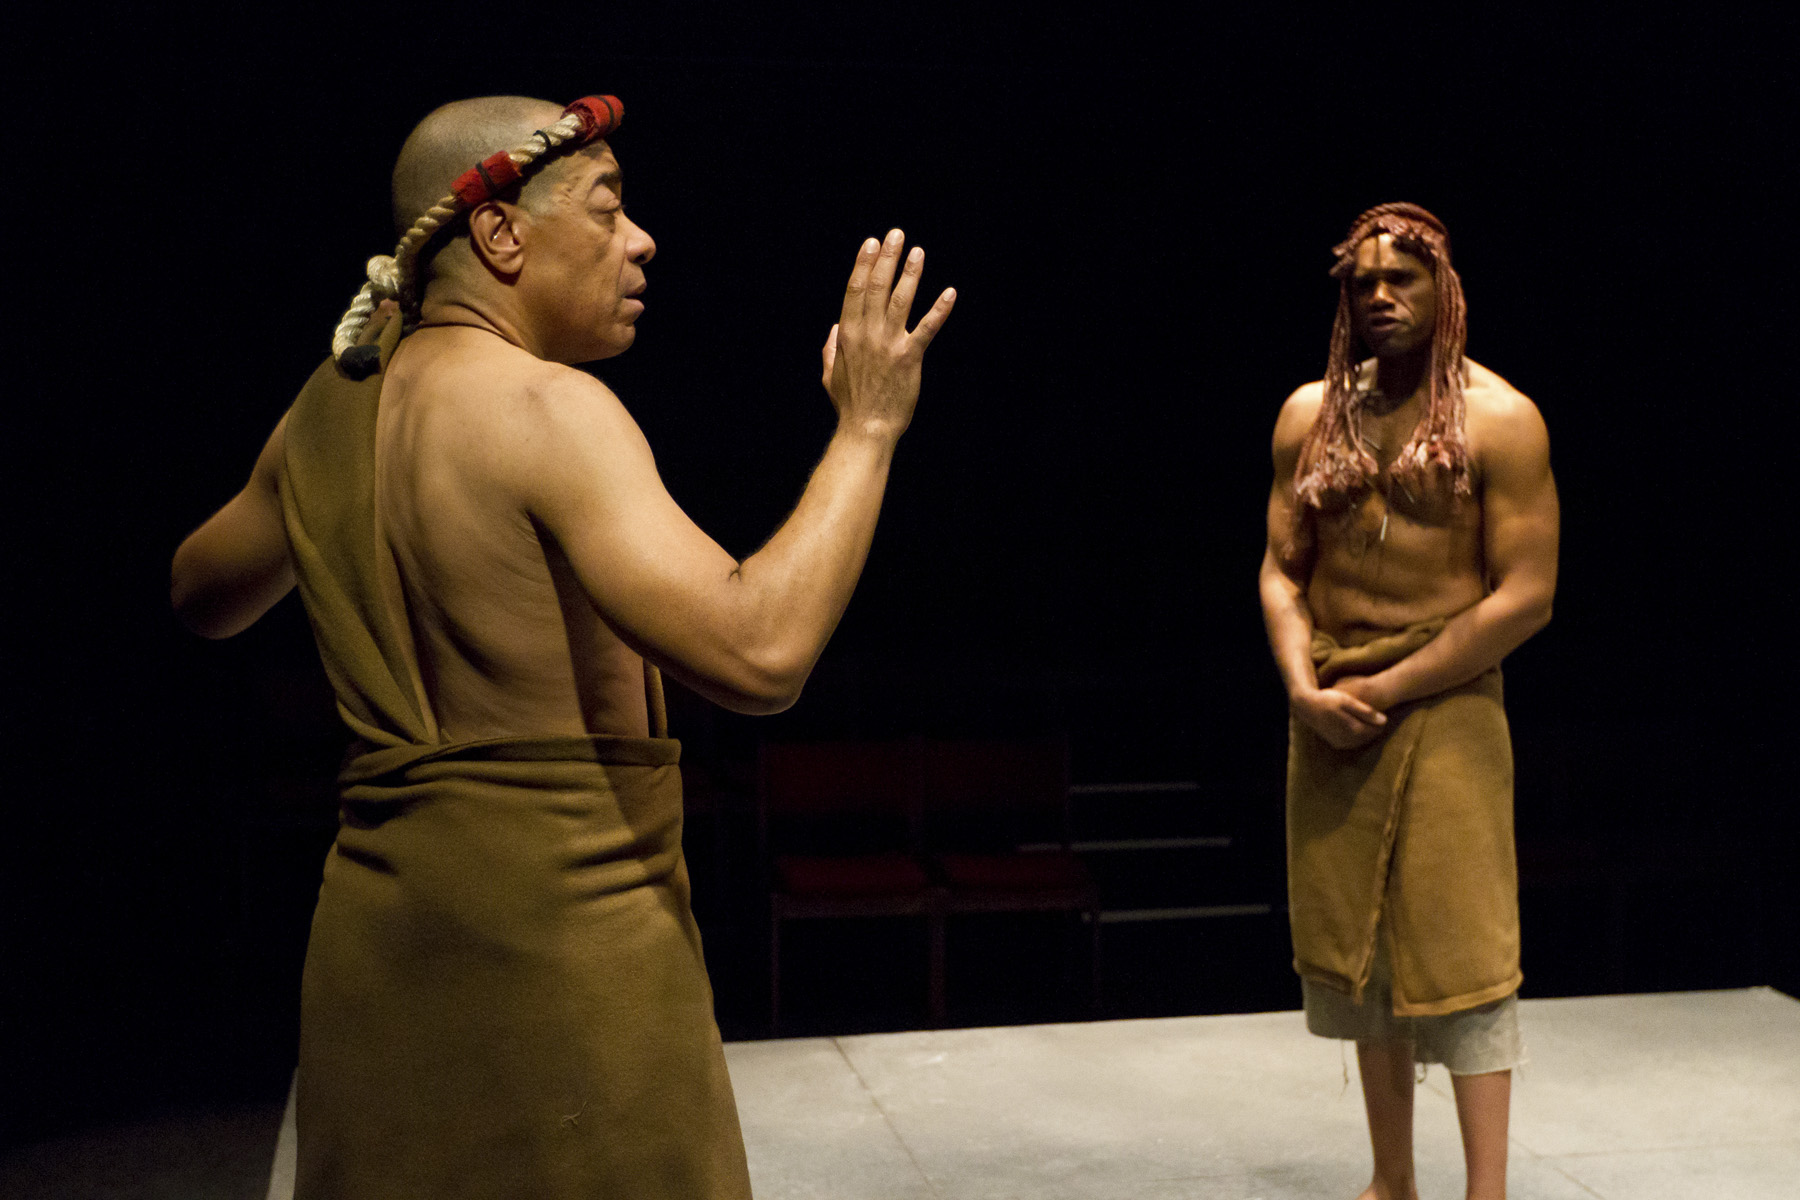 the island by athol fugard Harold athol lanigan fugard ois (born 11 june 1932) is a south african playwright, novelist, actor, and director who writes in englishhe is best known for his political plays opposing the system of apartheid and for the 2005 academy award-winning film of his novel tsotsi, directed by gavin hood.